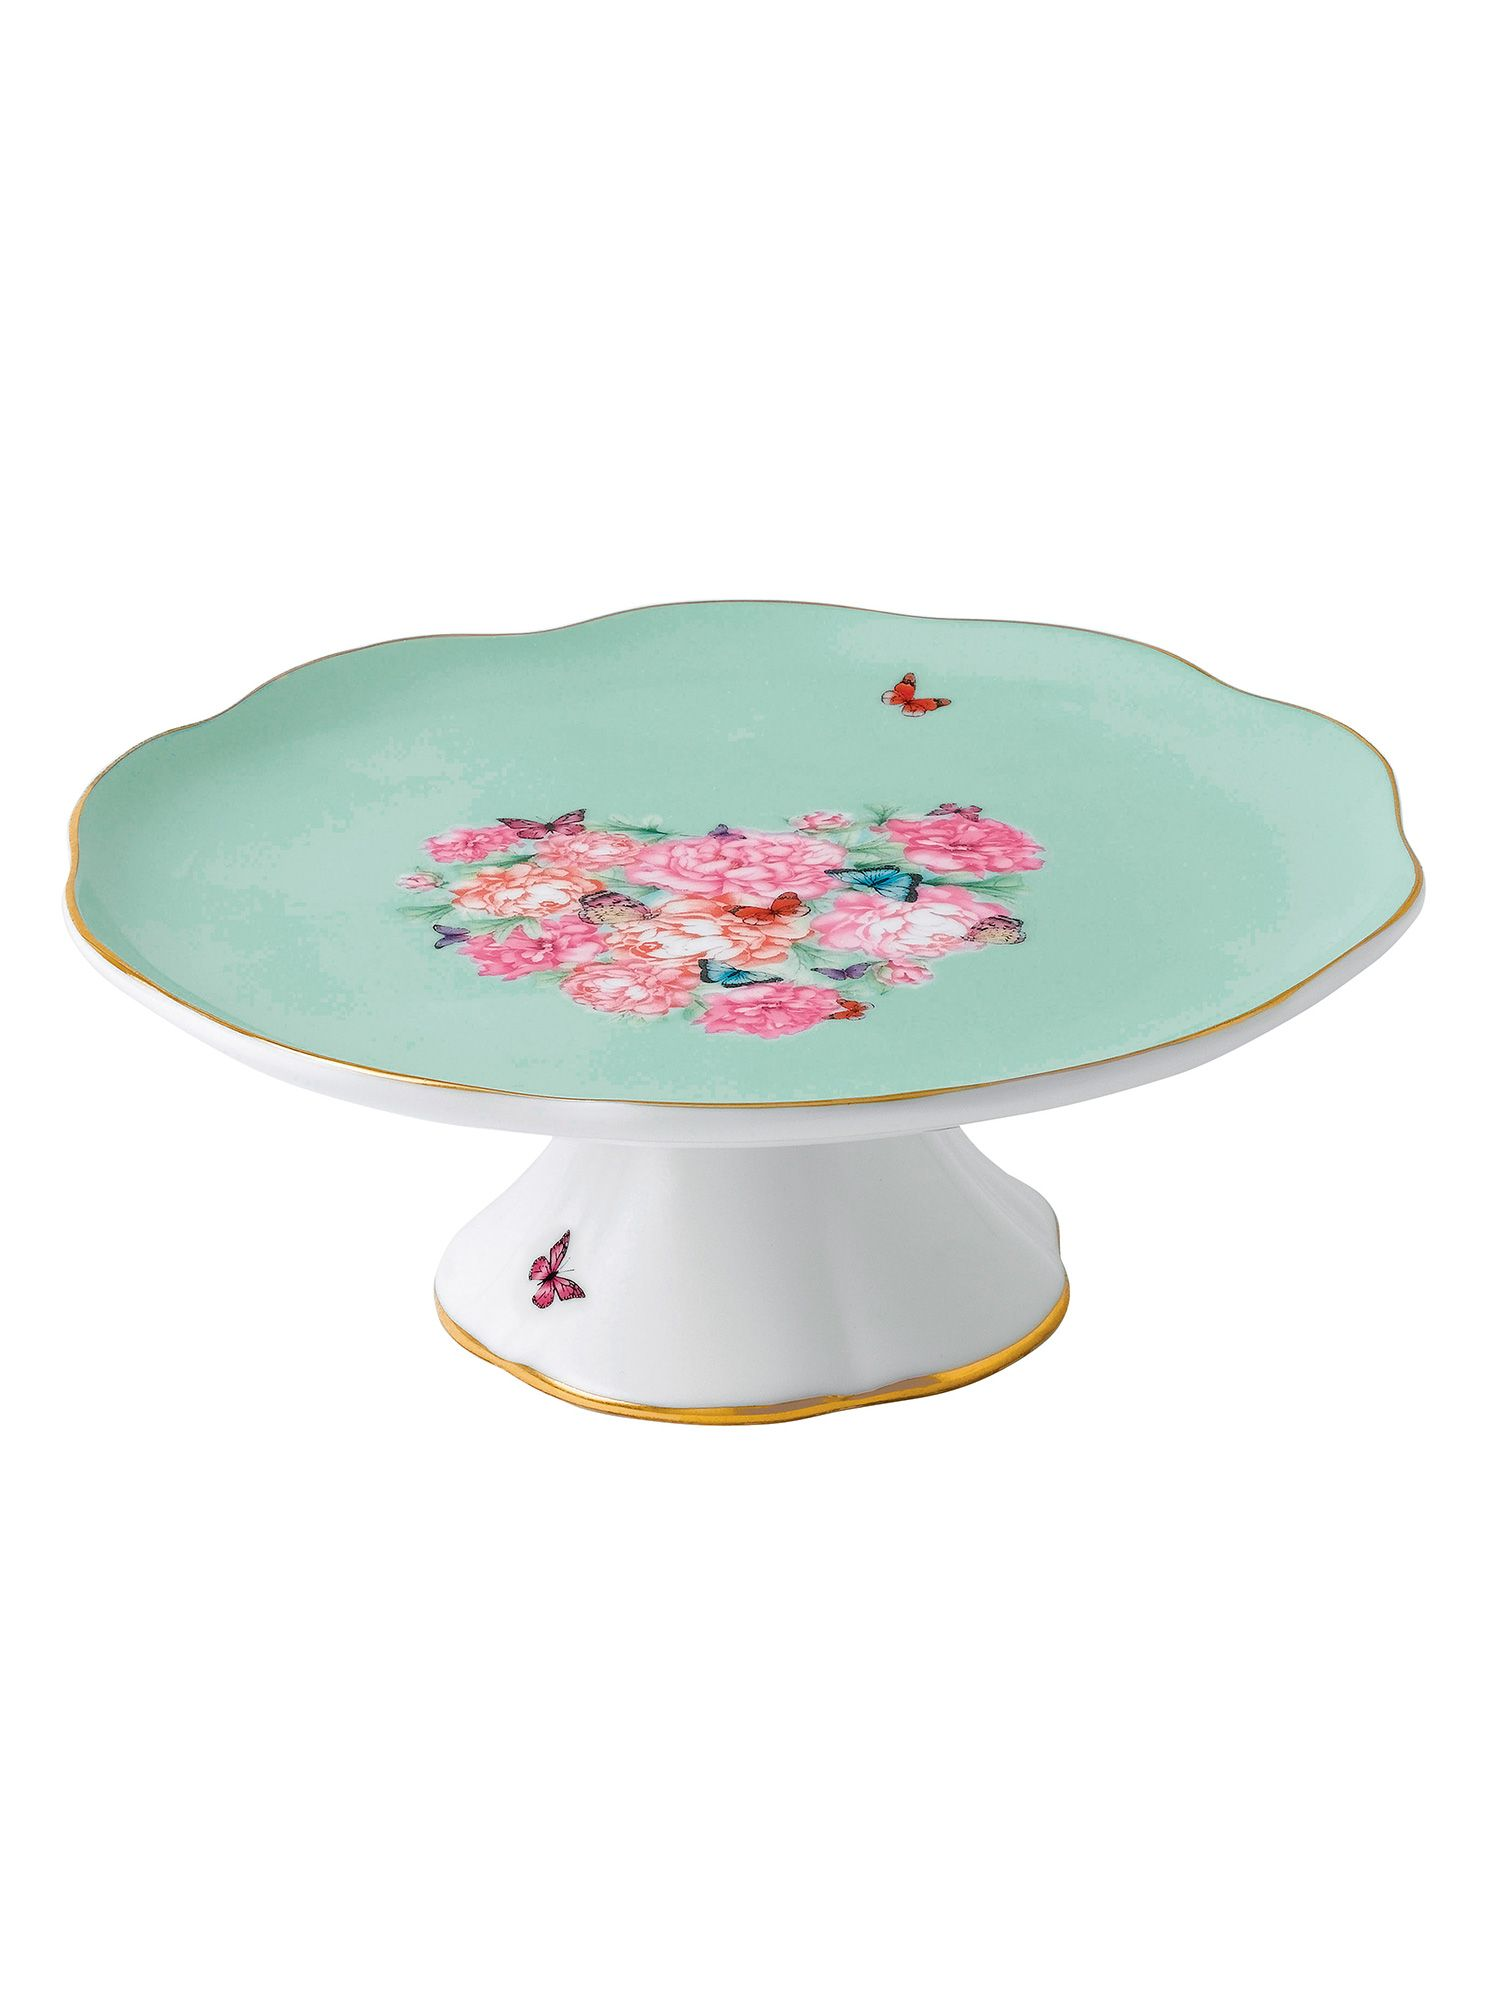 Miranda kerr blessings small cake stand